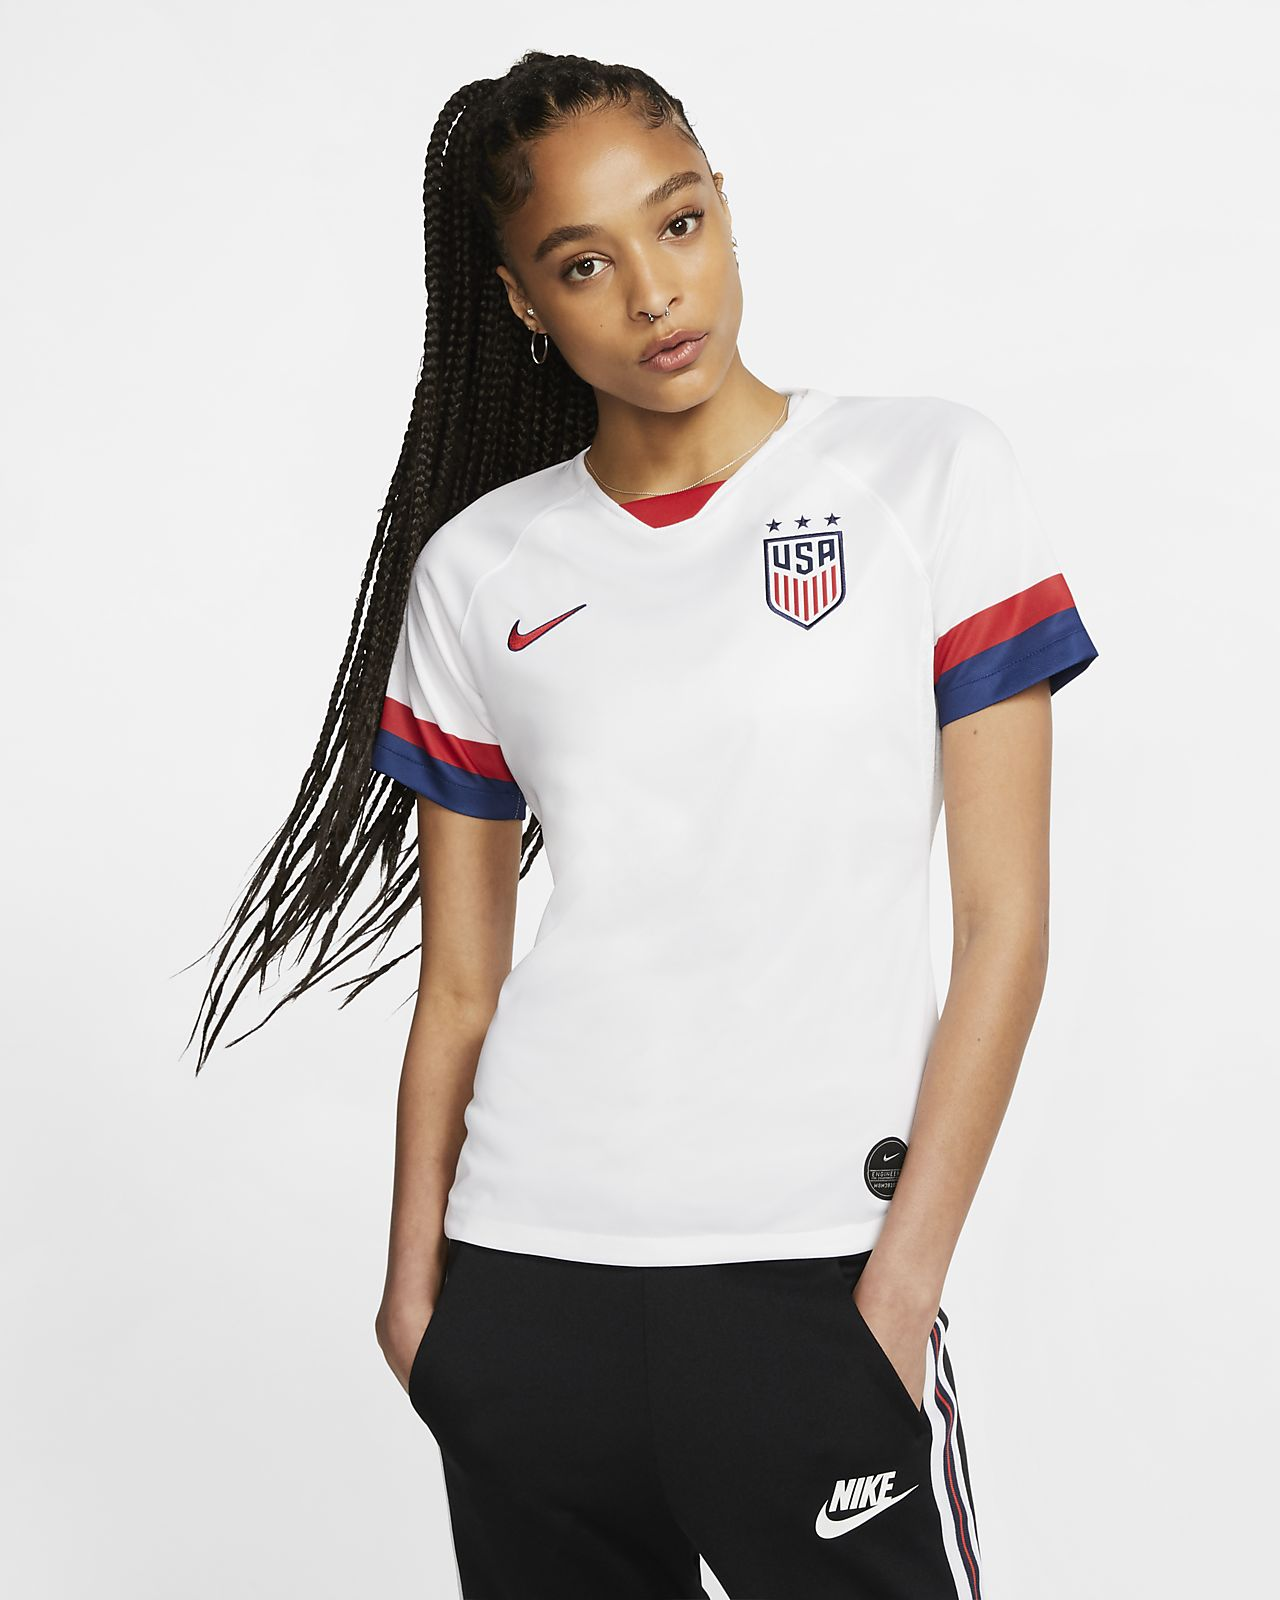 us women's soccer clothing buy clothes shoes online